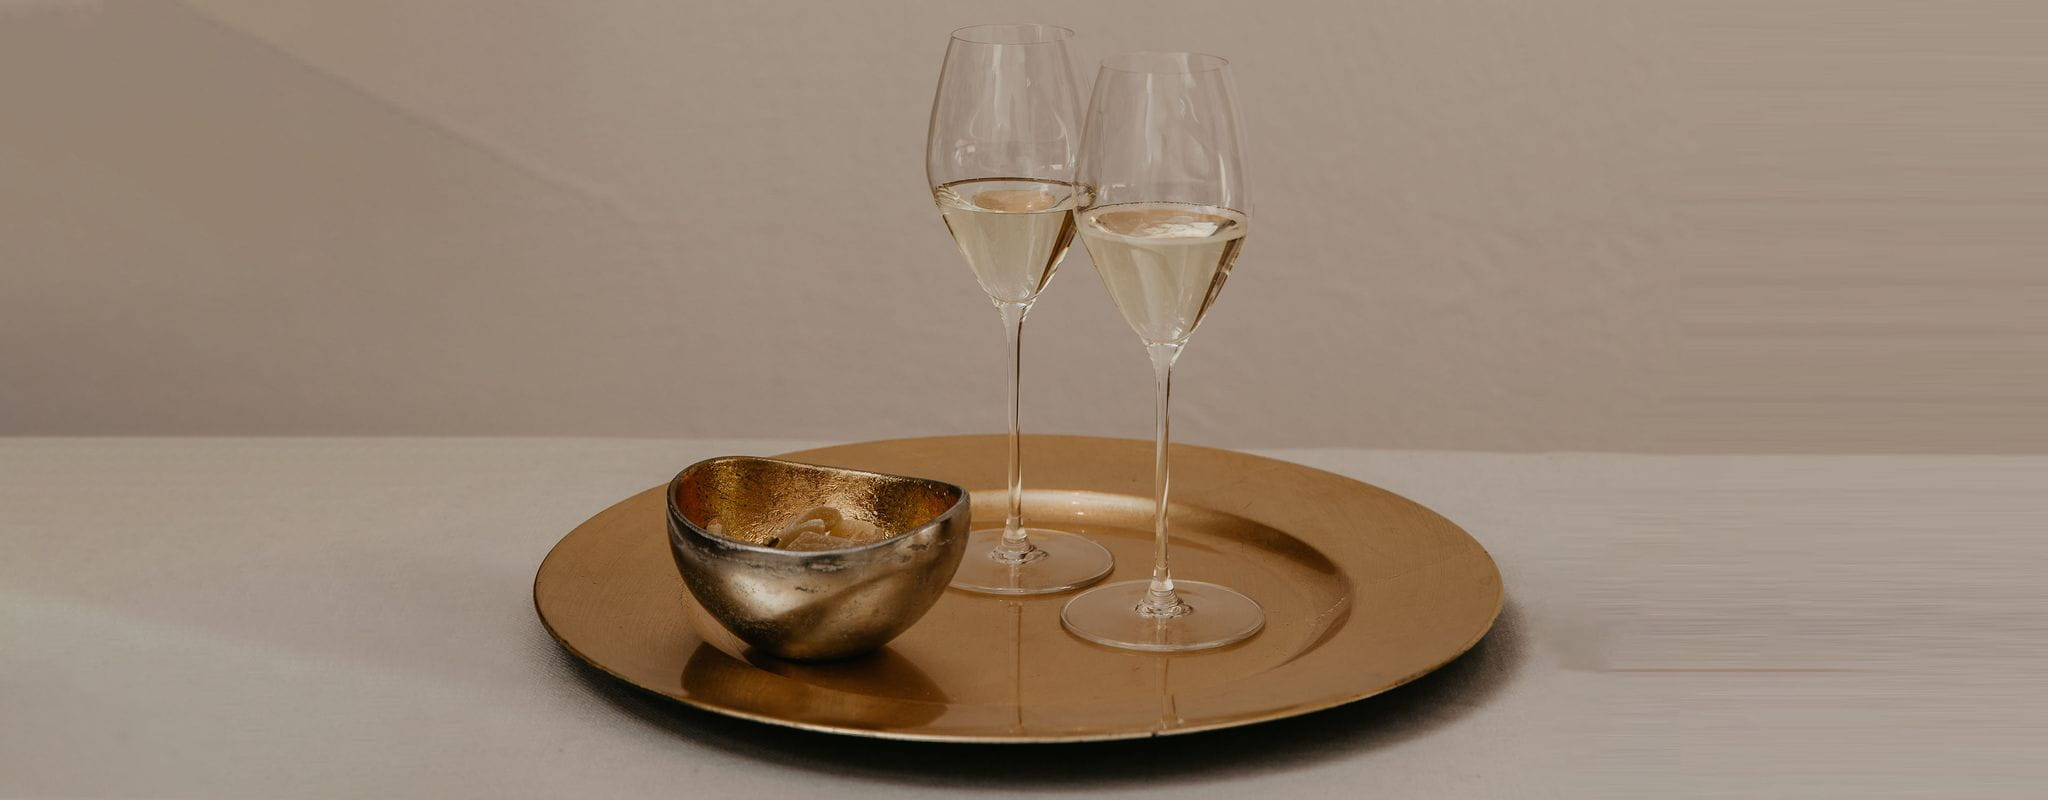 RIEDEL Performance Champagne glasses on a gold tray